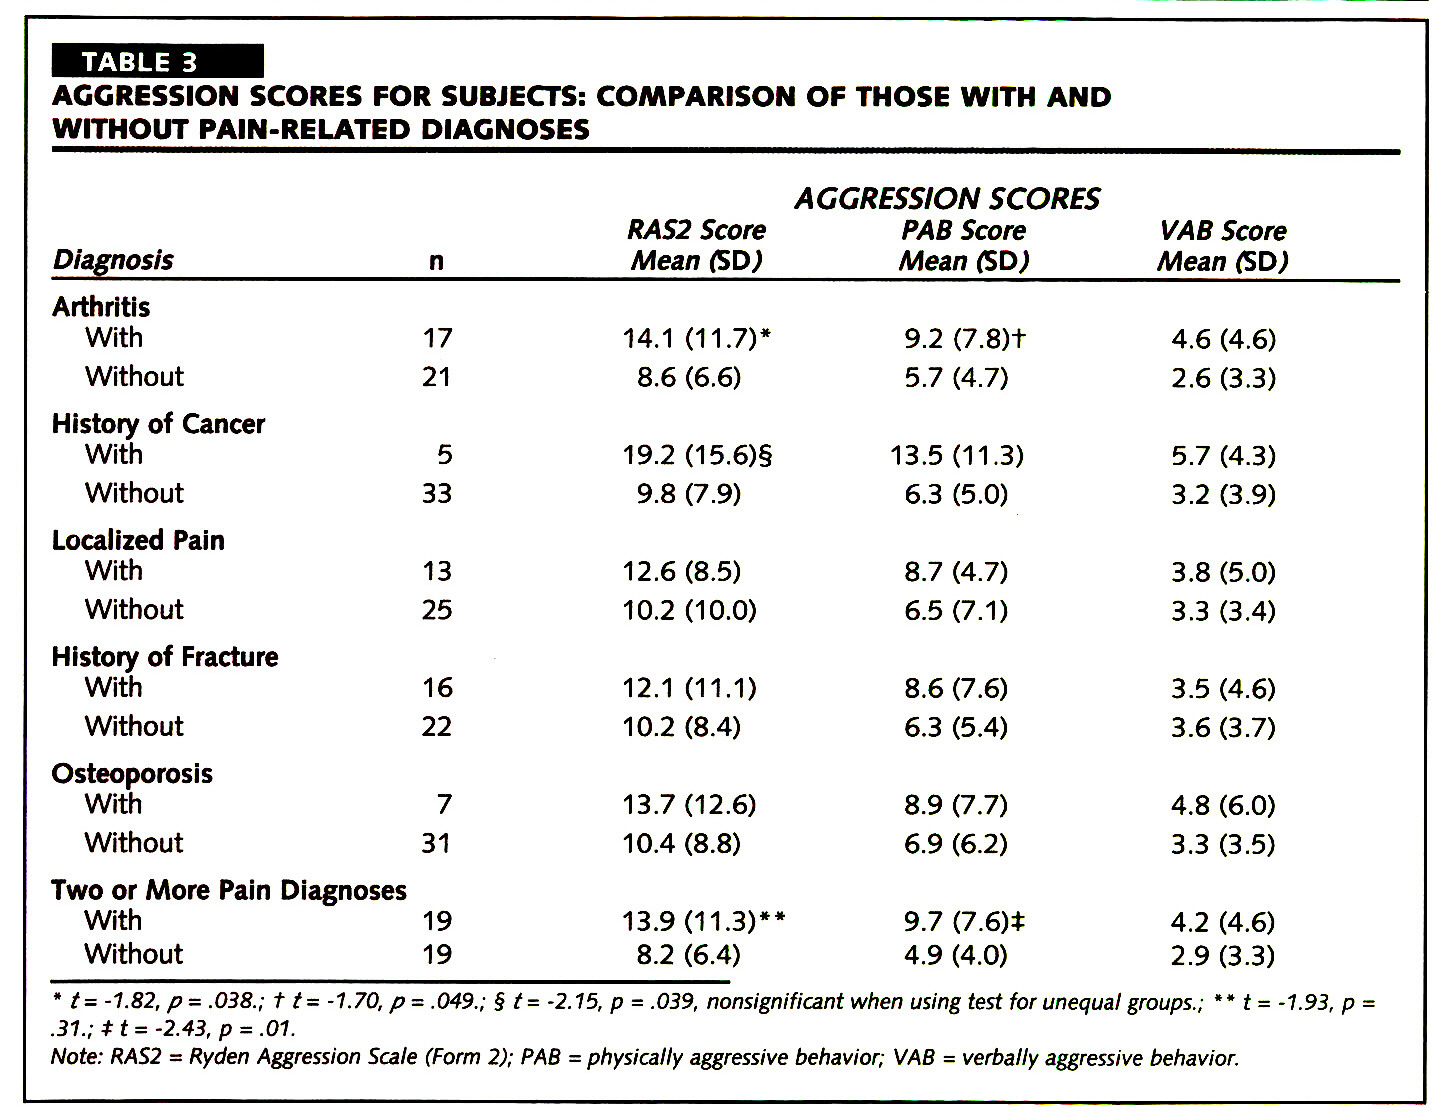 TABLE 3AGGRESSION SCORES FOR SUBJECTS: COMPARISON OF THOSE WITH AND WITHOUT PAIN-RELATED DIAGNOSES